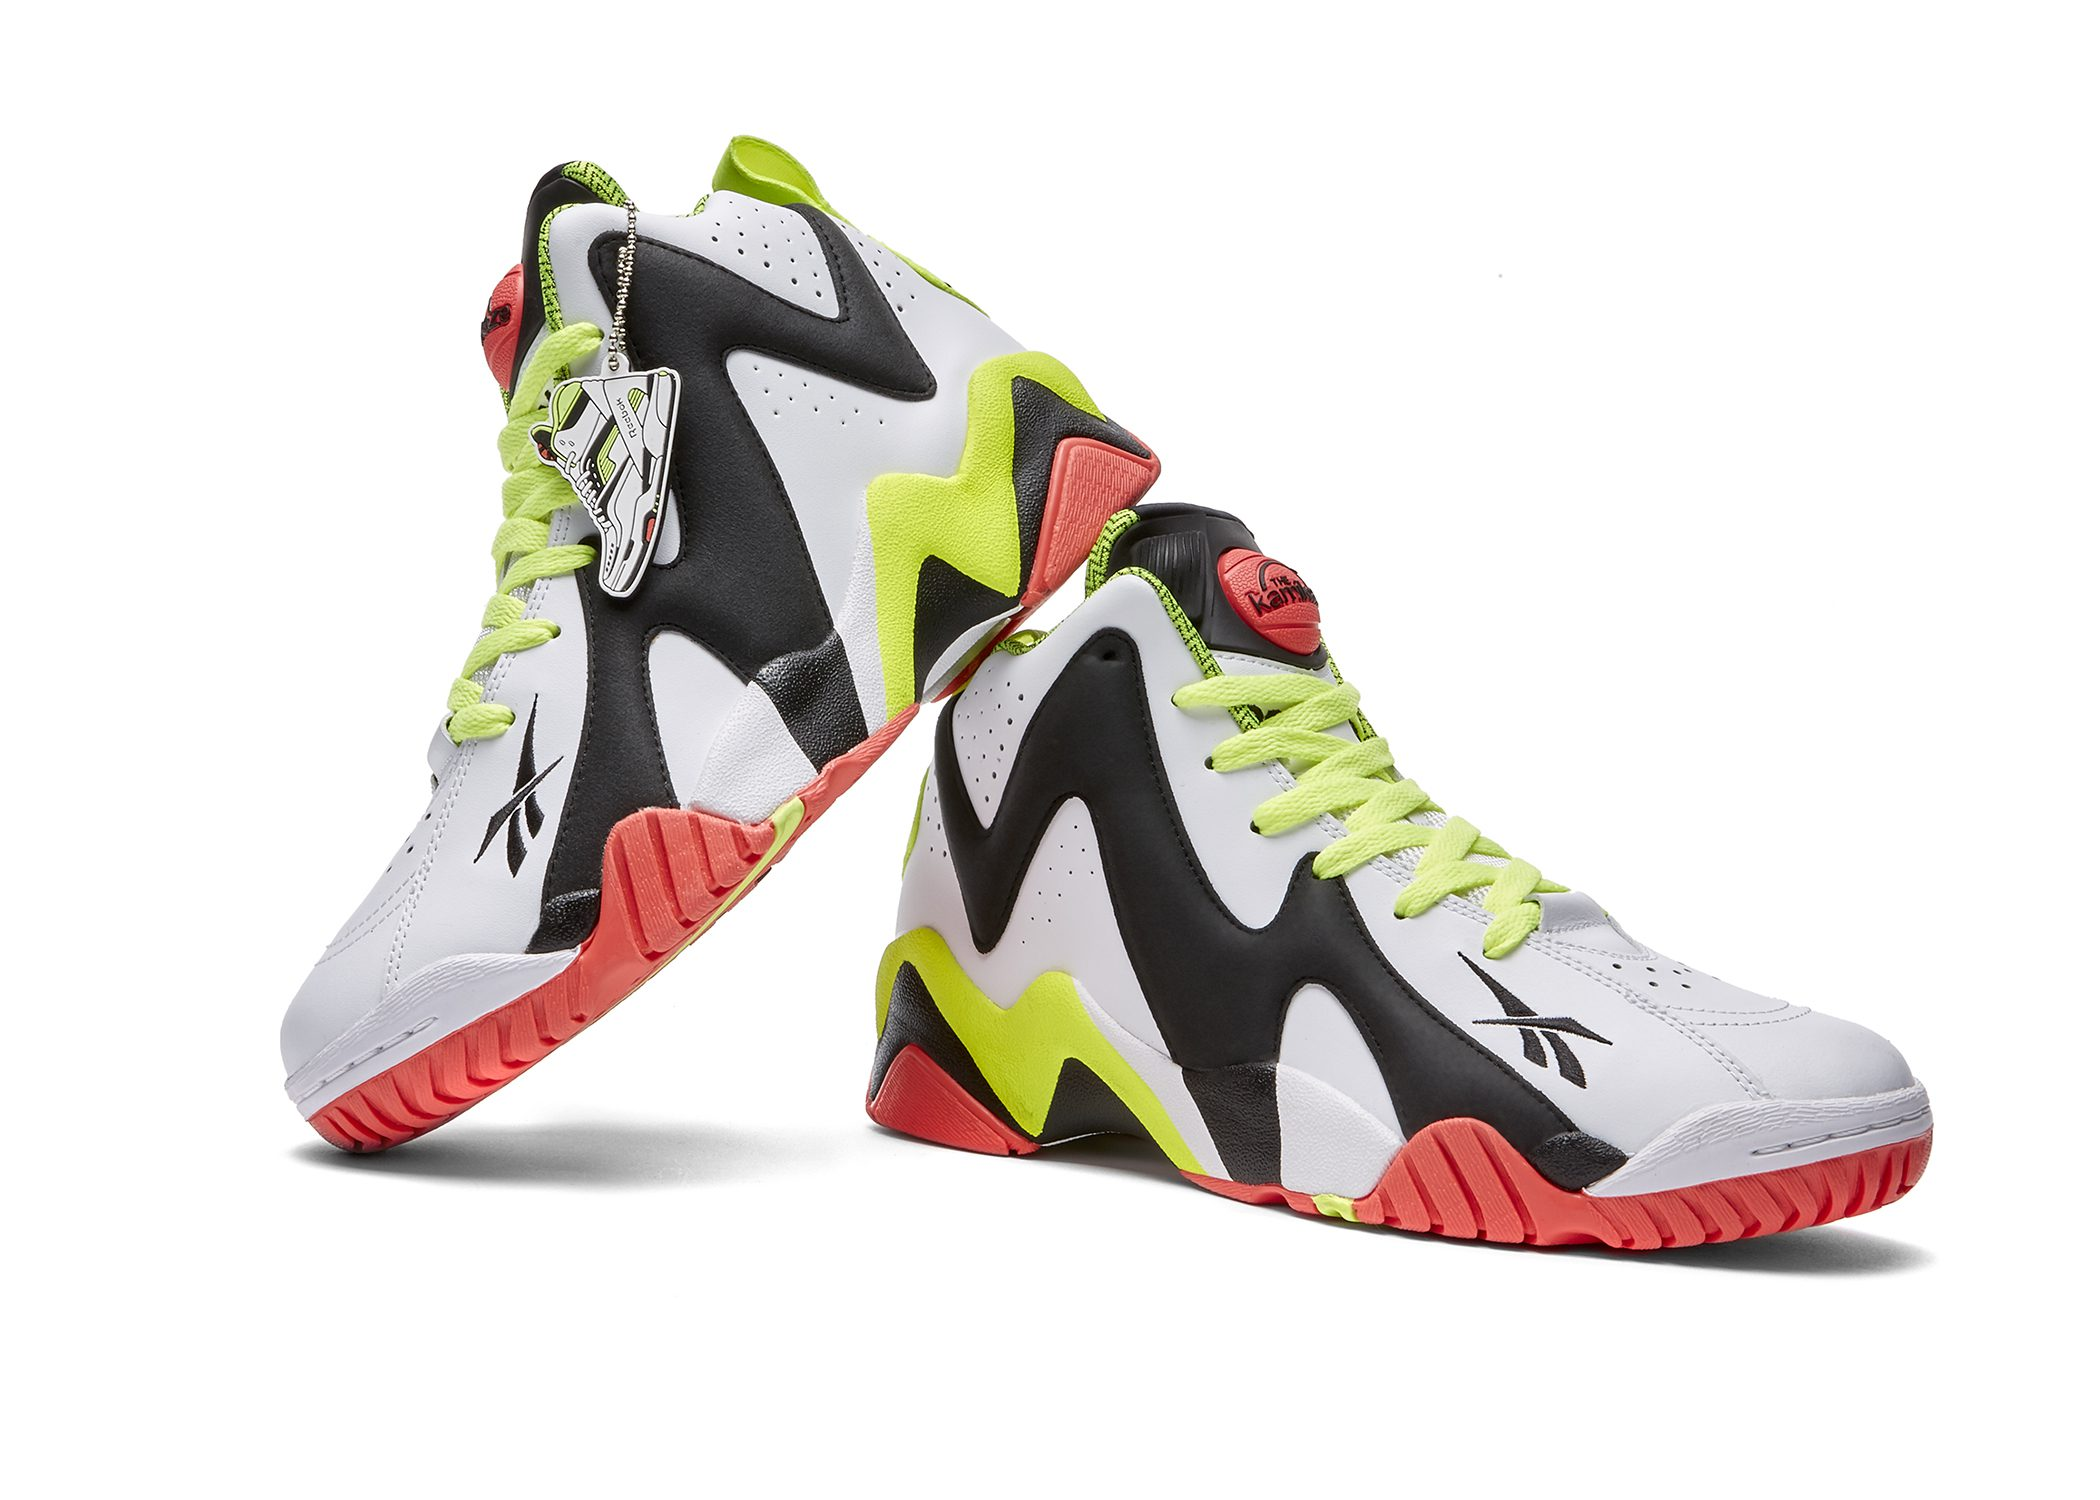 a597f5560 WASTE TO ENERGY. new reebok pumps 2015